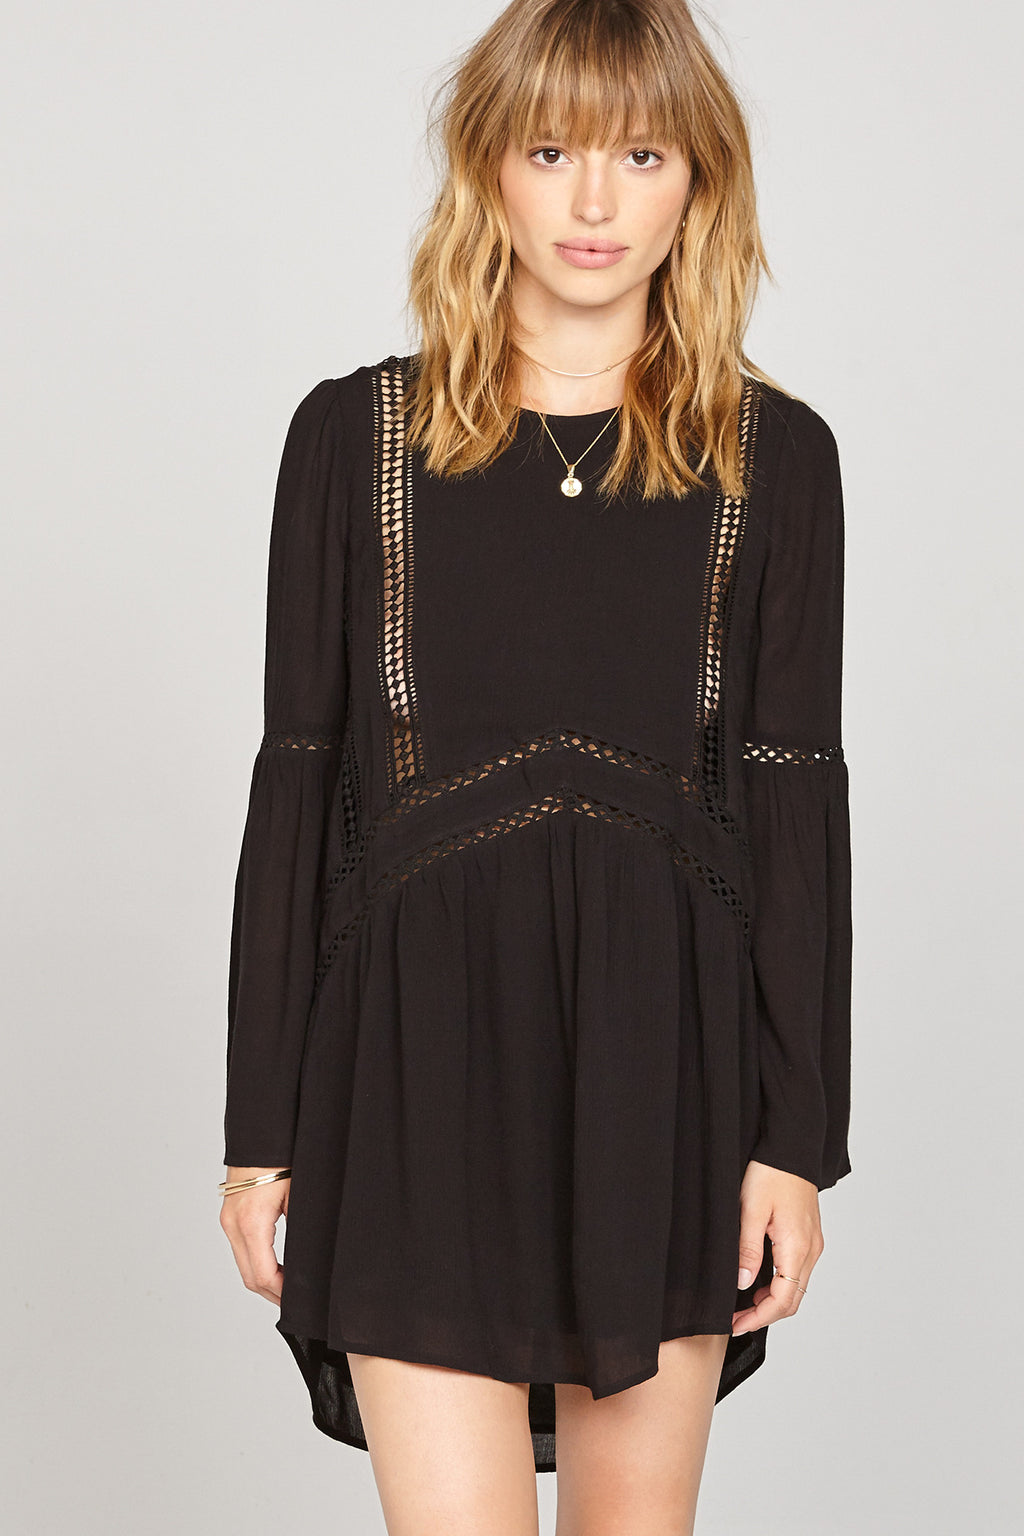 Amuse Society Black Kensington Dress AD15ken